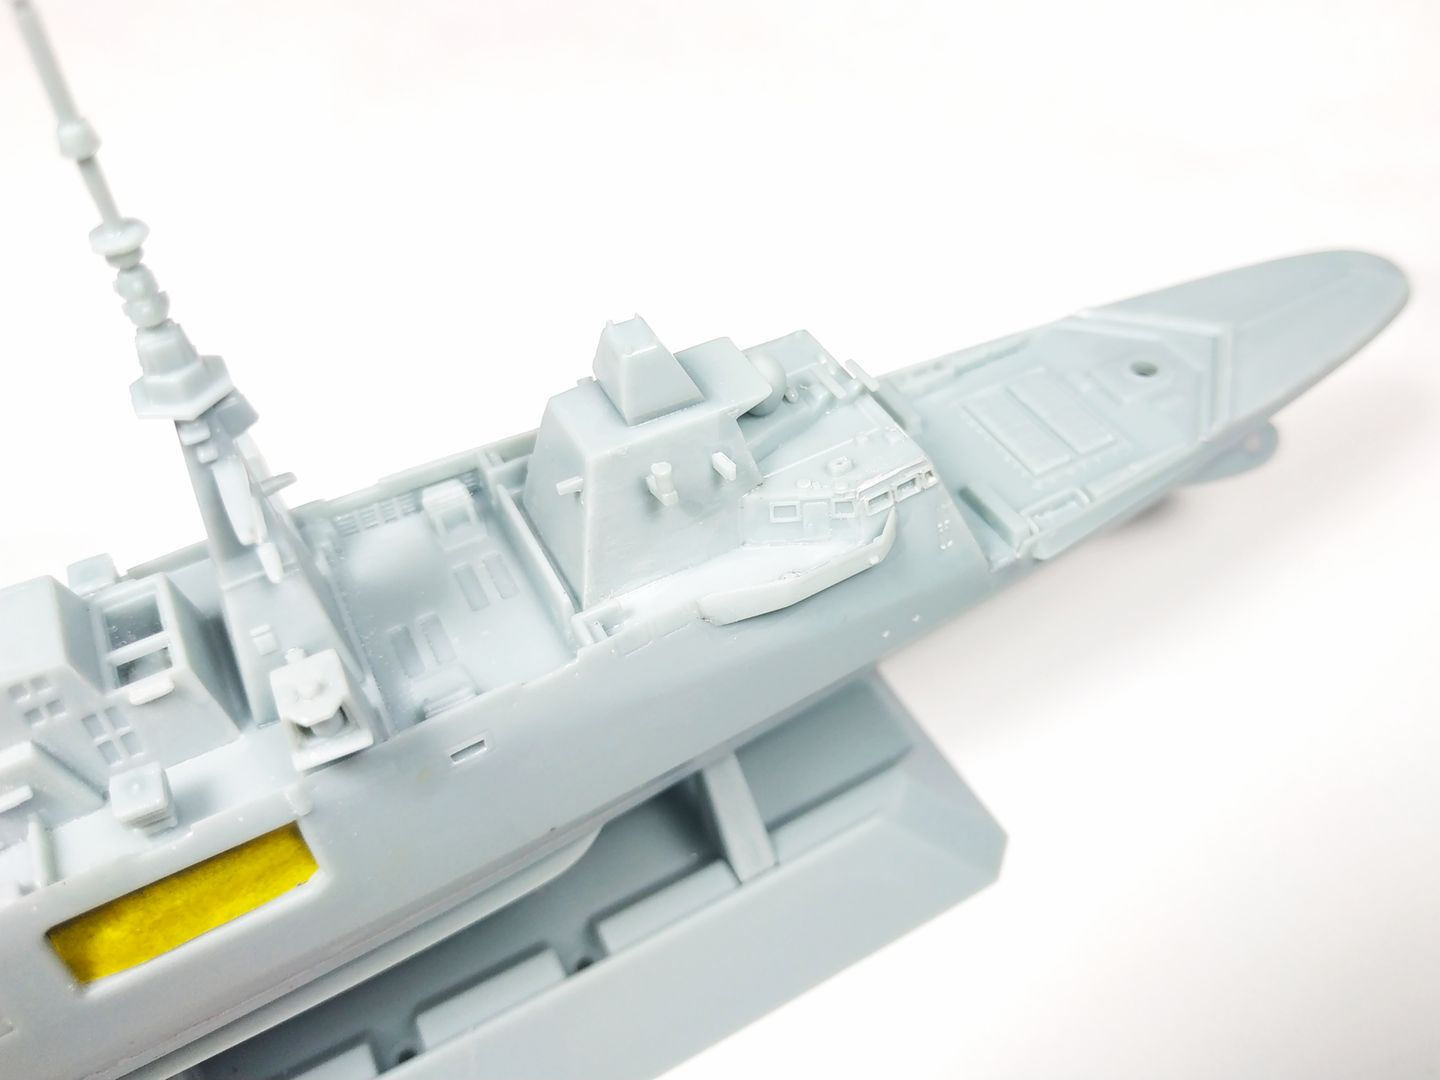 1/700 FREMM - Freedom Model Kit IMG_20190705_202557_zpsiklrsmil